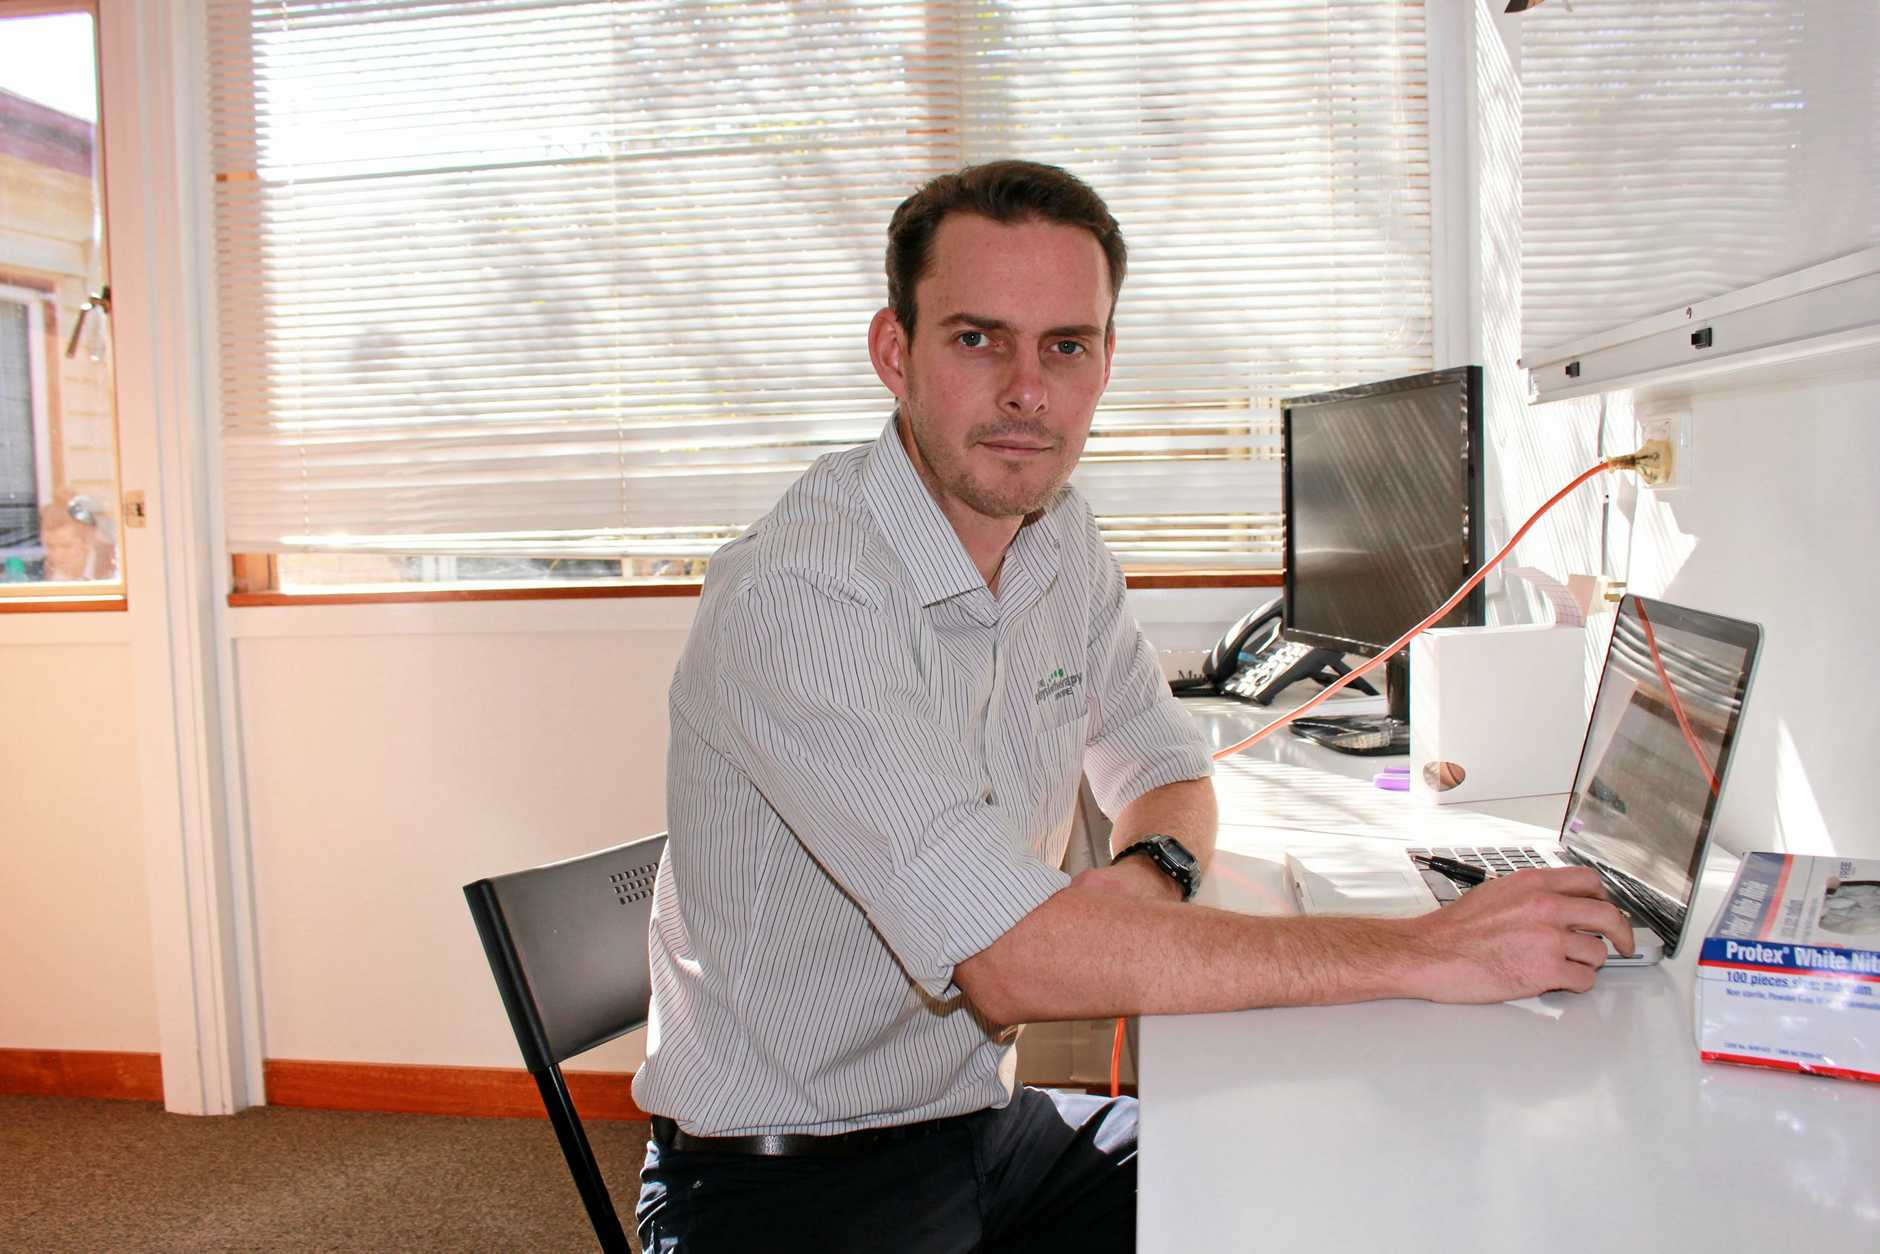 The Physiotherapy Centre owner and principal physiotherapist Josh Hay is frustrated by his struggle to attract tertiary-educated professionals to work and settle in Warwick.